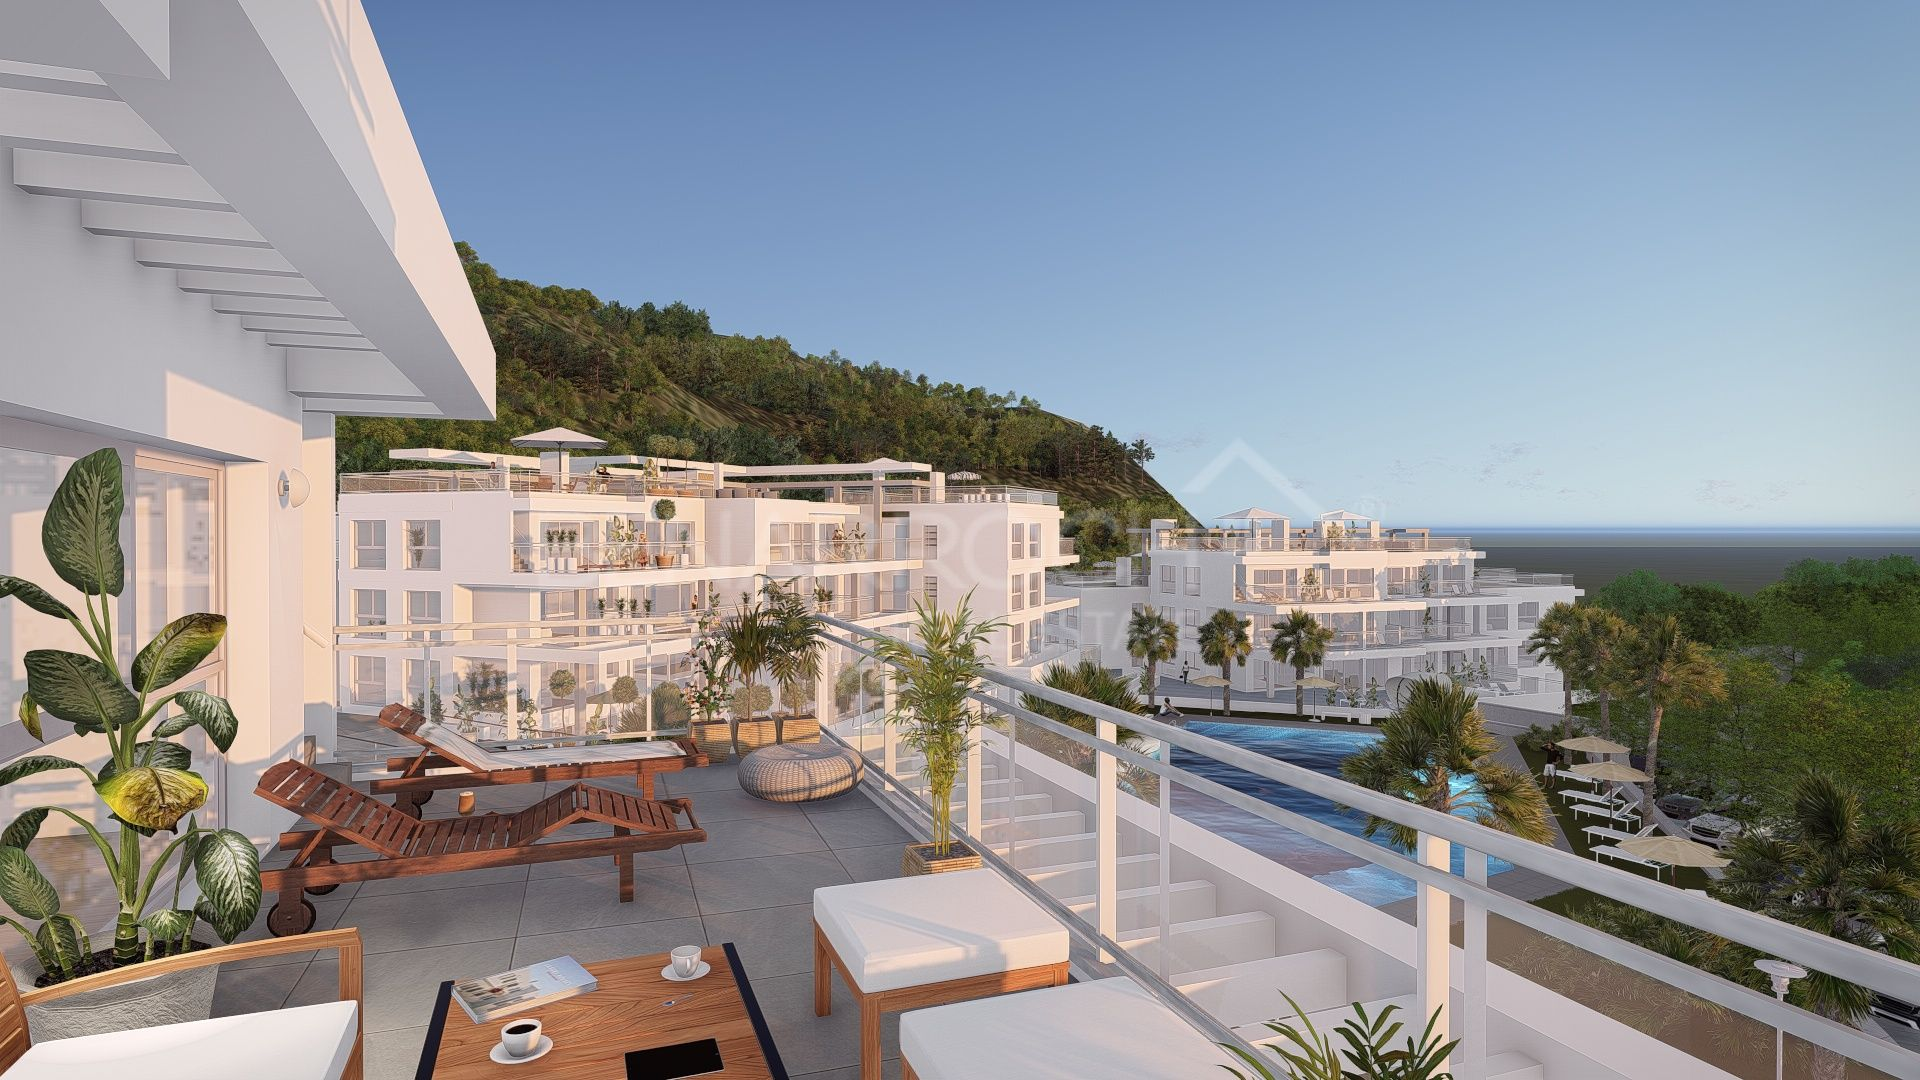 Developments in Marbella, Costa del Sol